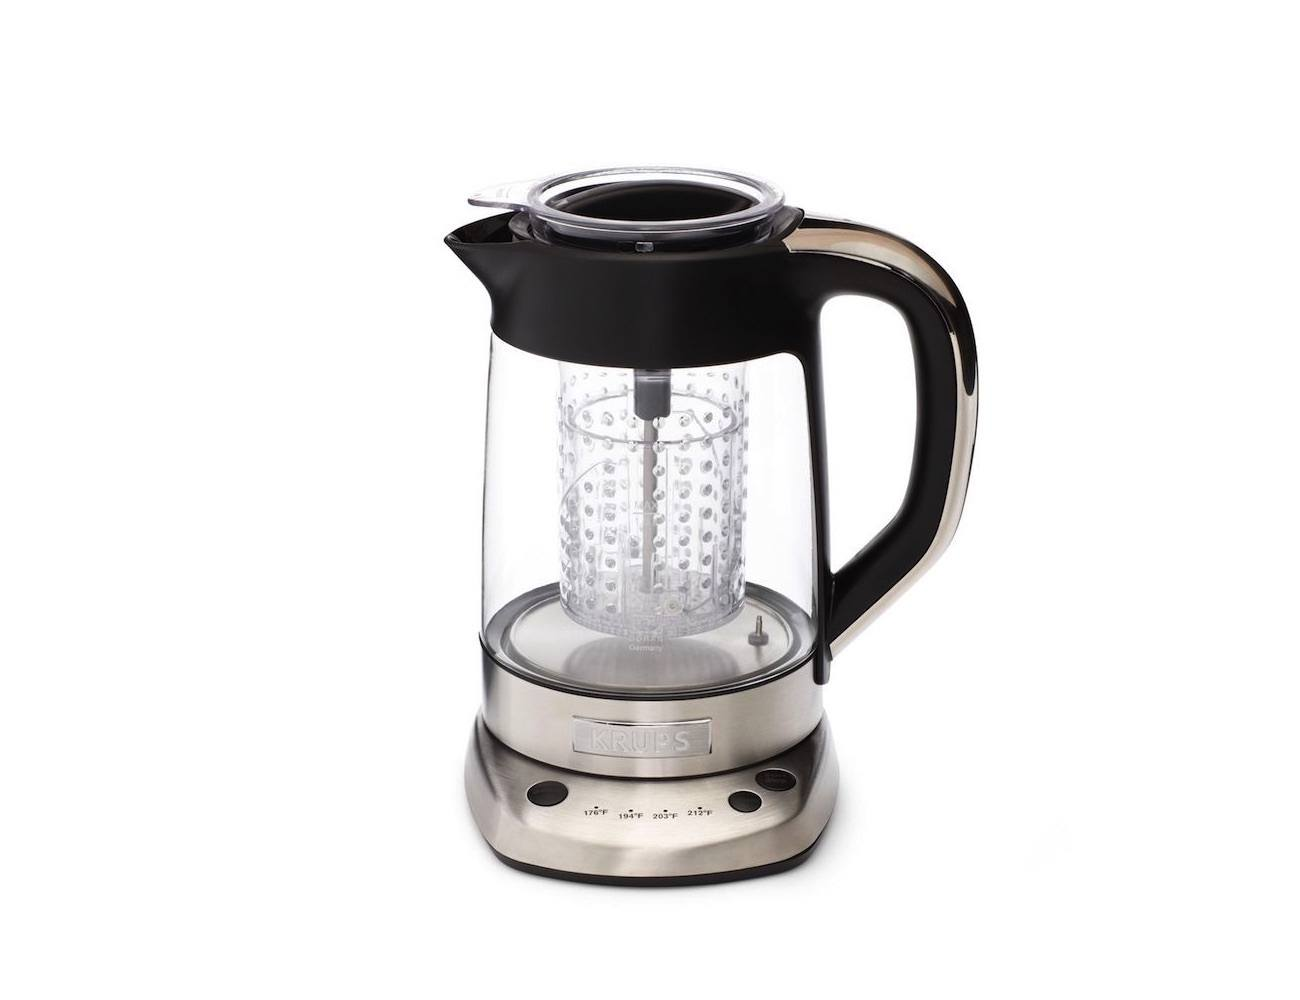 Krups Electric Glass Kettle Tea Infuser